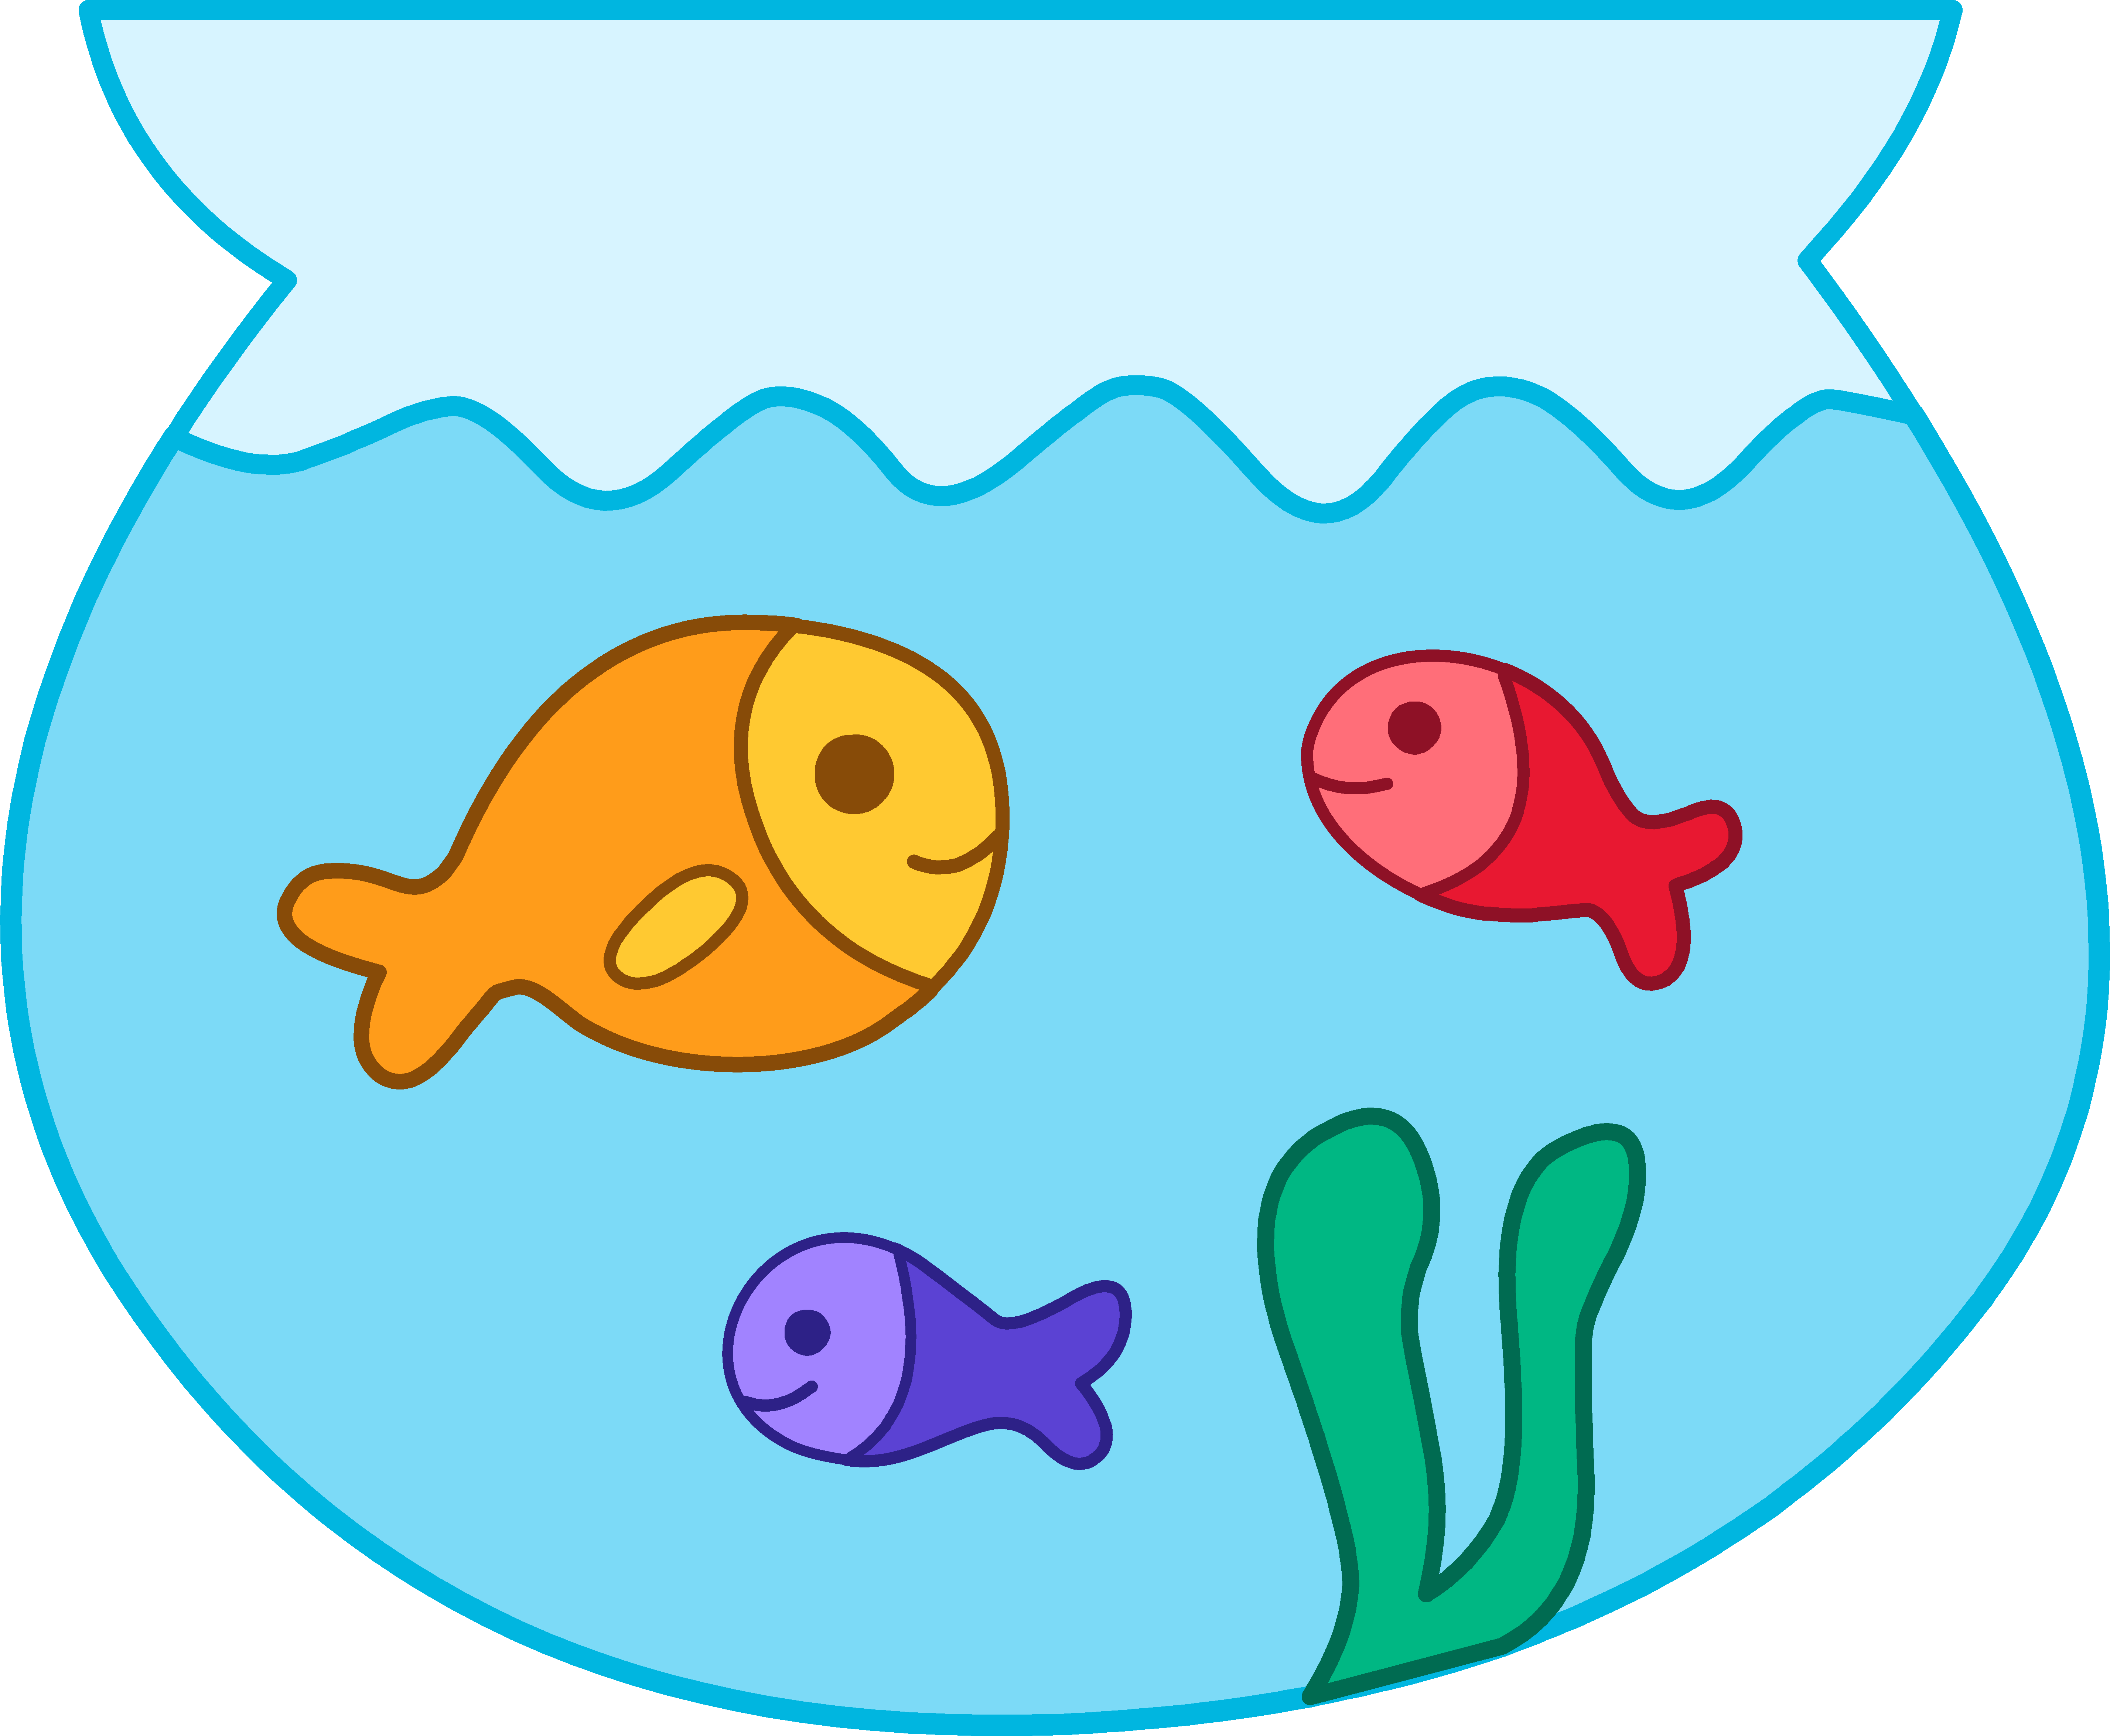 Cute fish clip art. Fishbowl clipart banner black and white stock